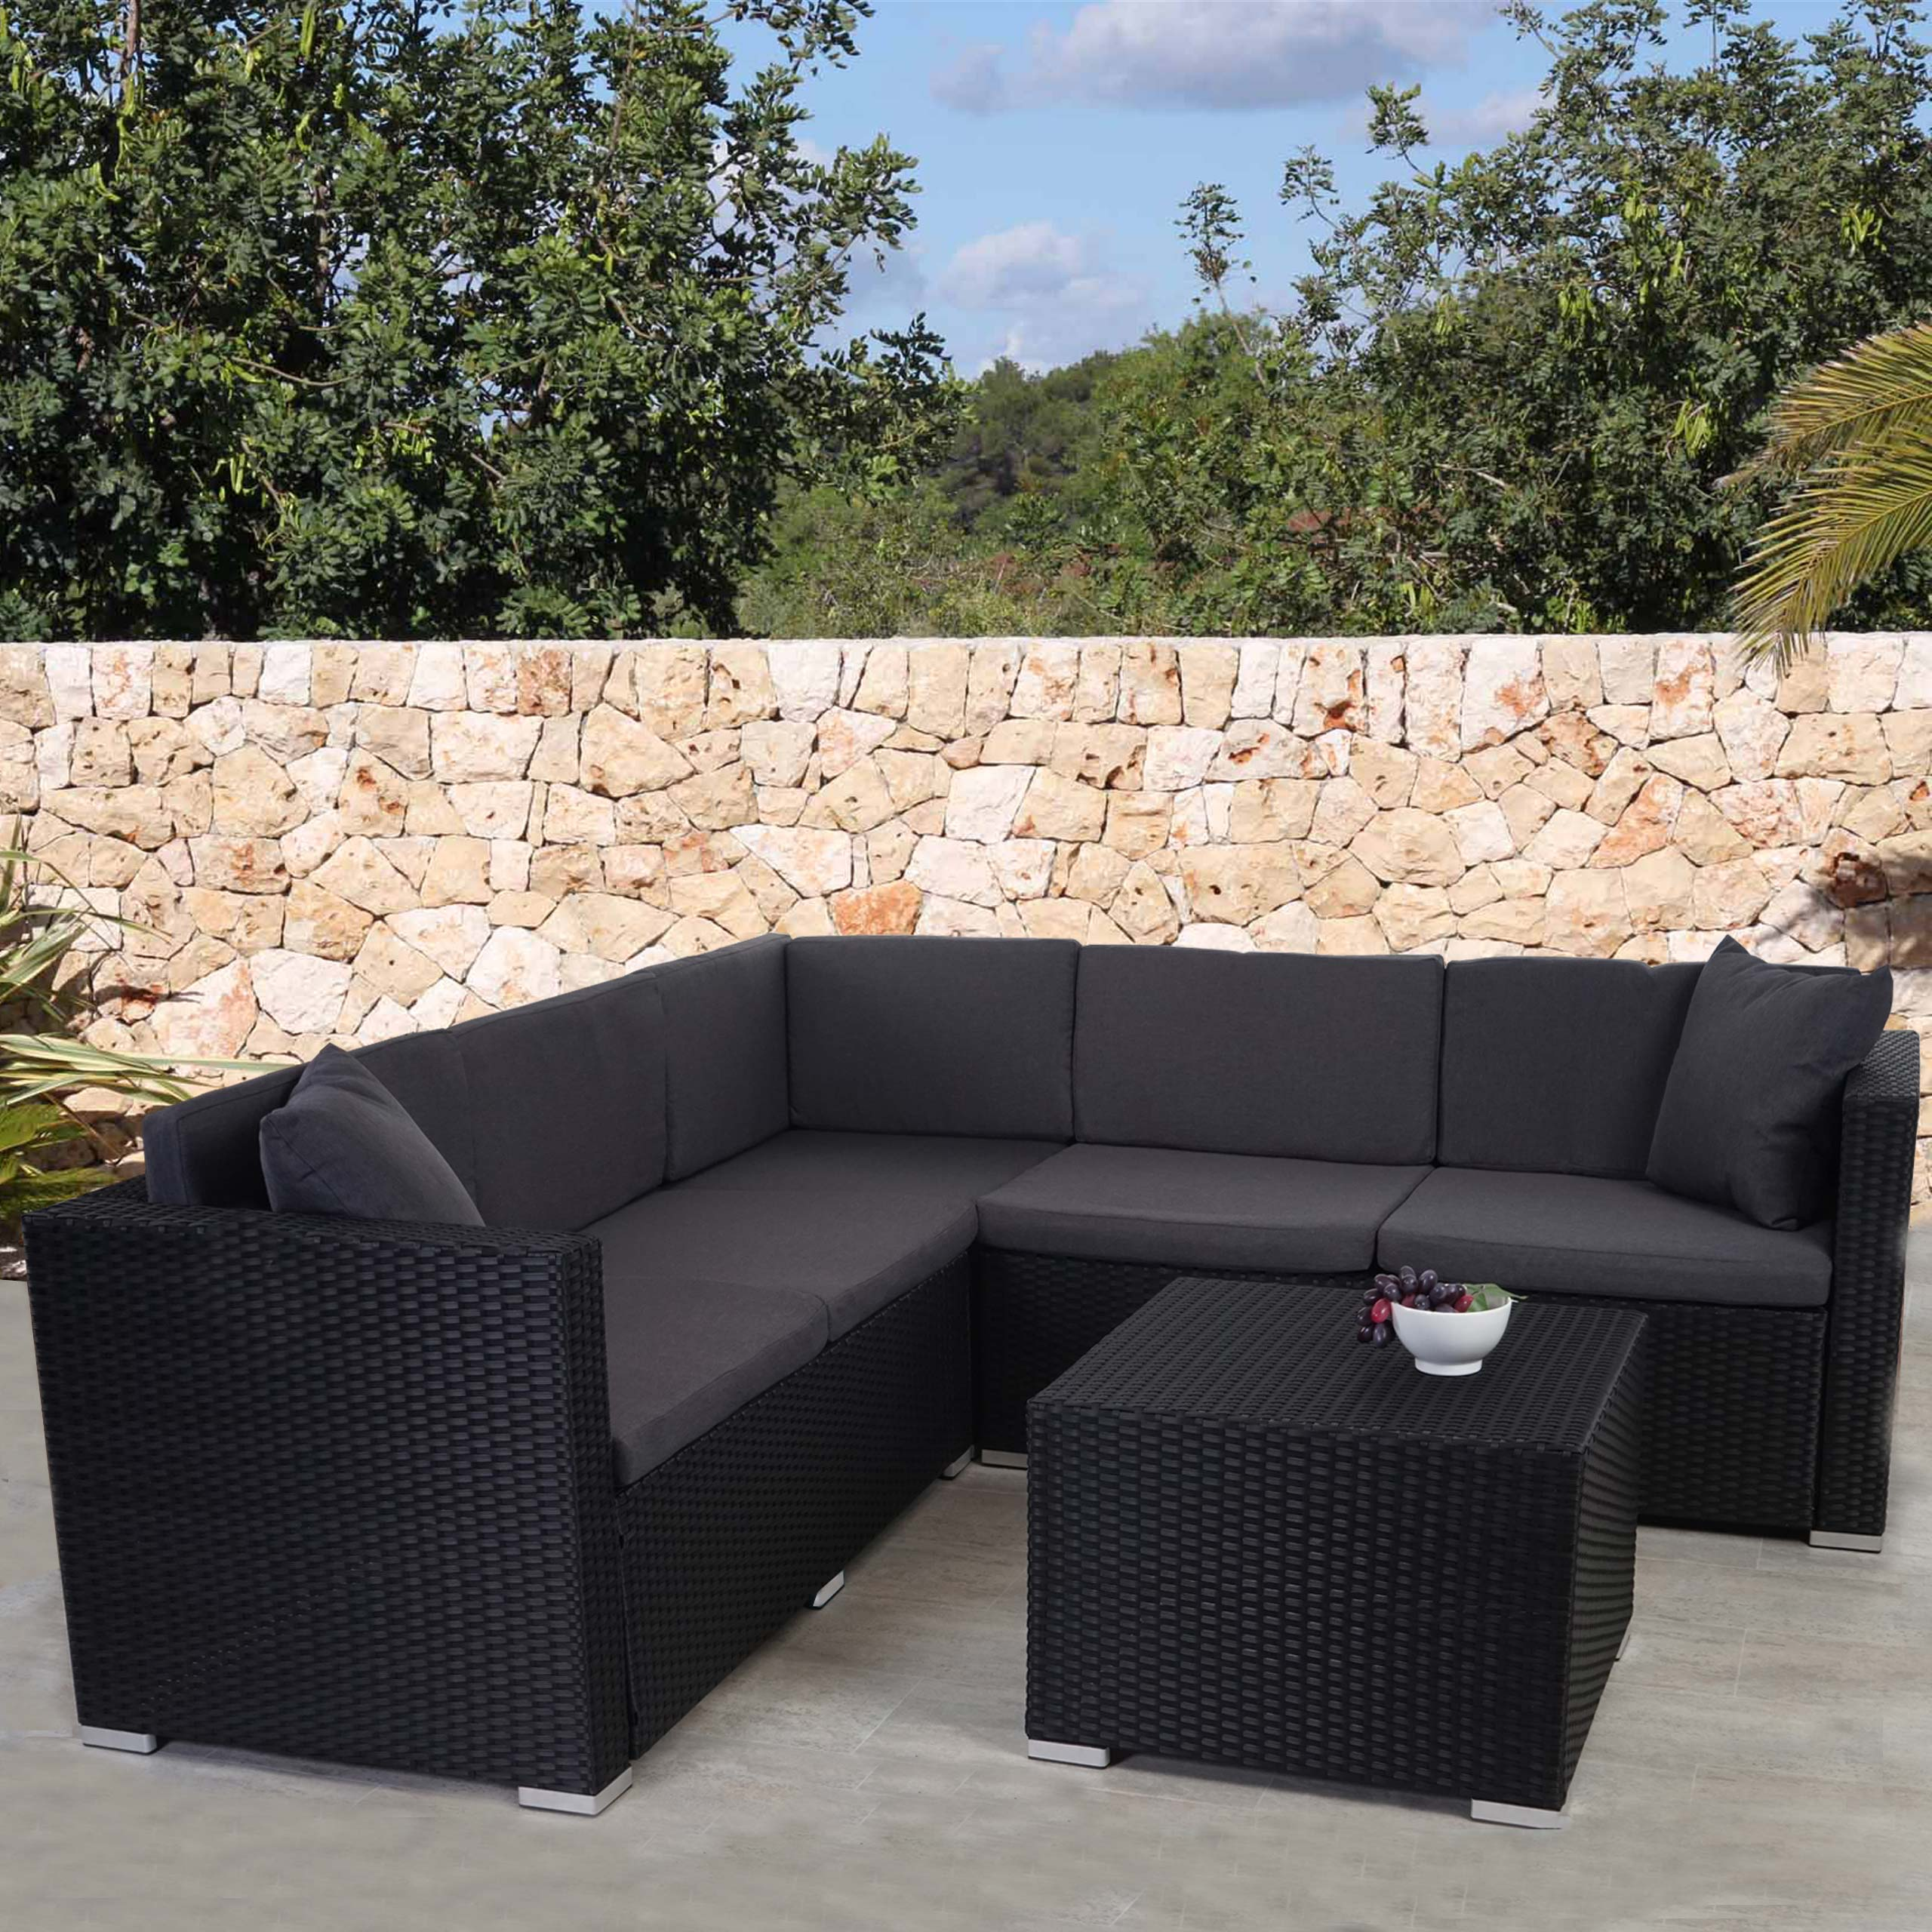 Full Size of Rattan Furniture Table Sofa Set Argos Outdoor Sale Cover Bed Philippines For Davao Corner Aldi Grey Australia Beds Uk Cheap Indoor Cushions Replacements Sofa Rattan Sofa